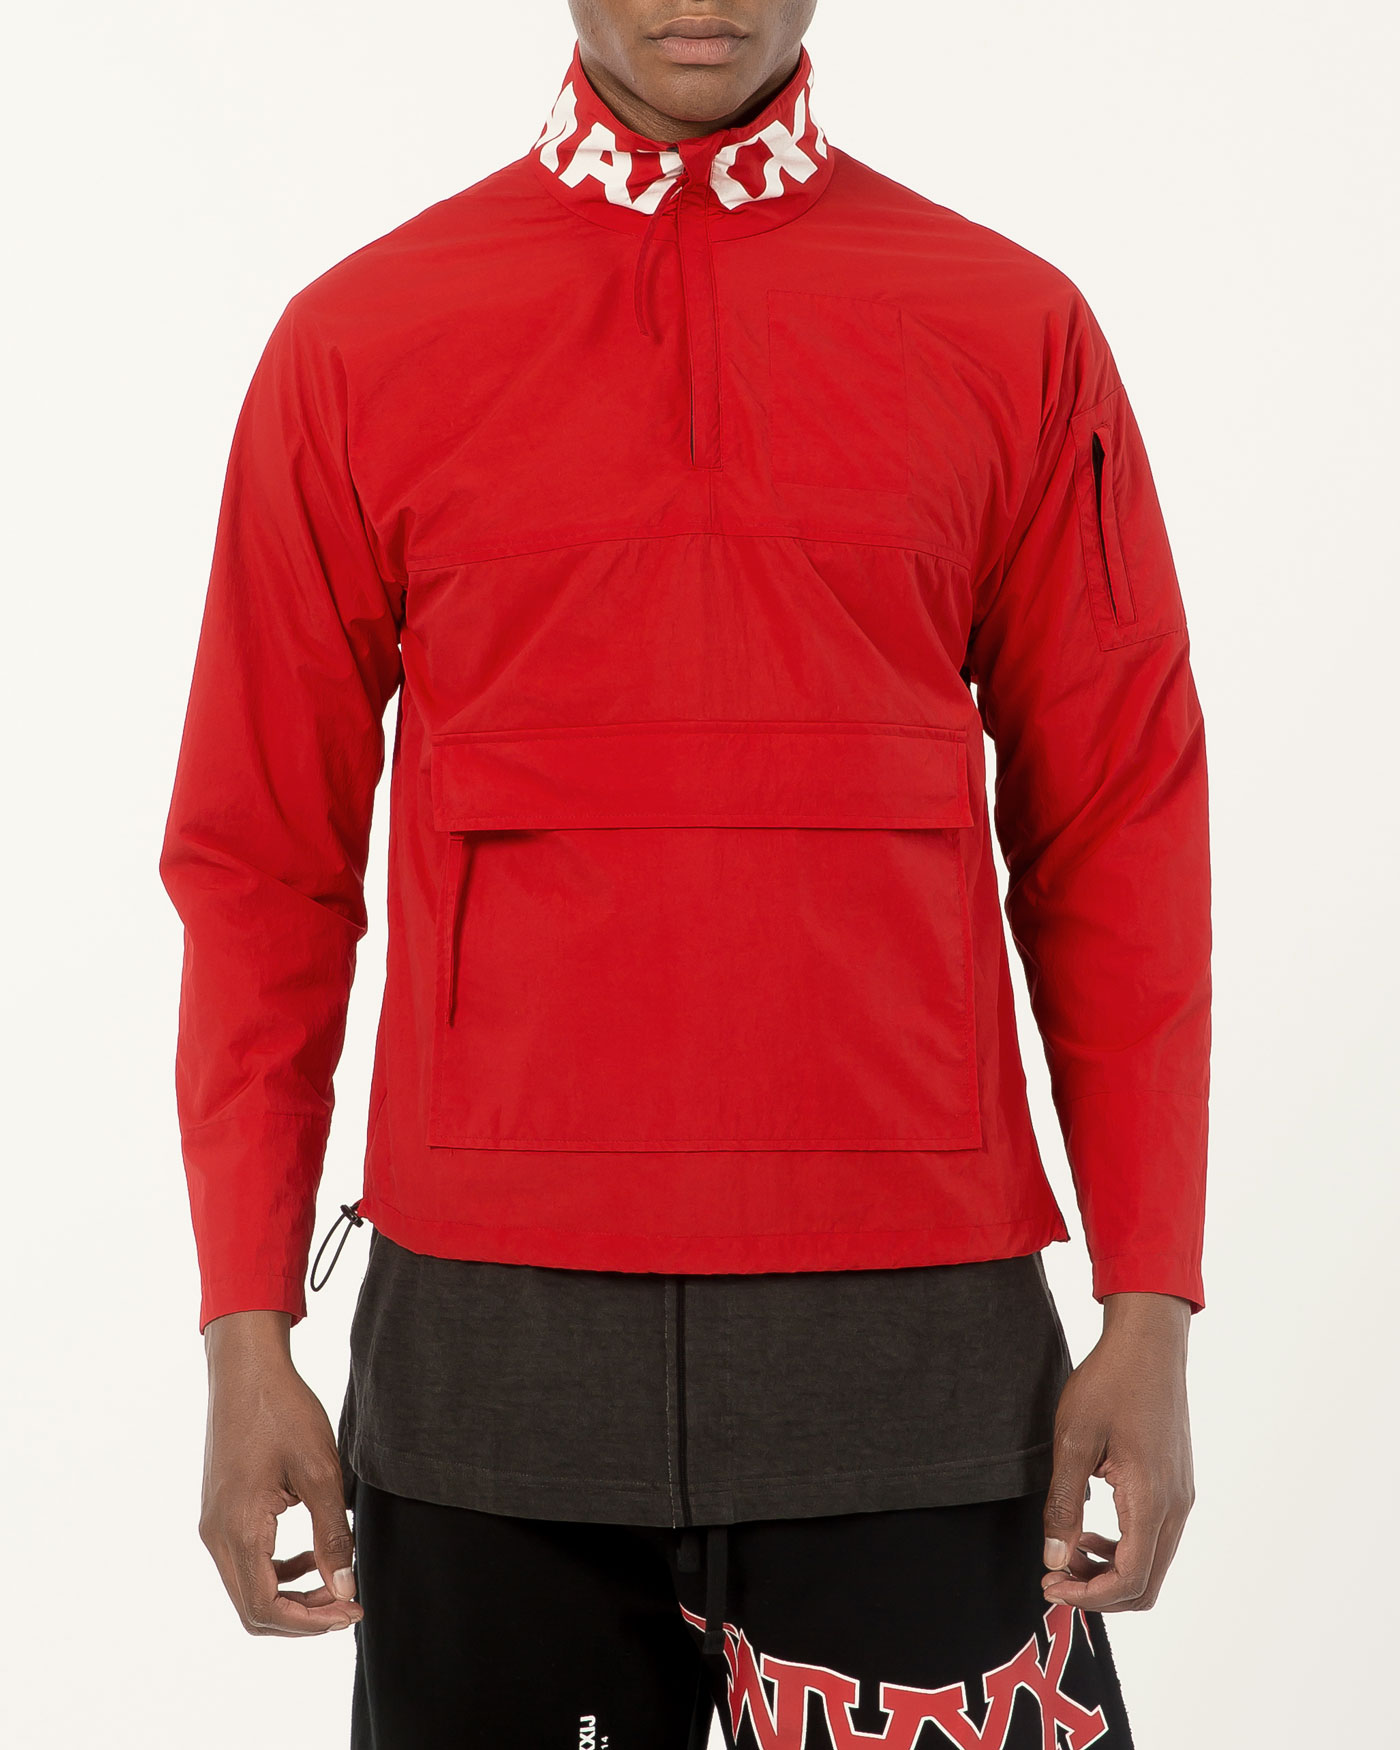 Anorak Jumper Red/White